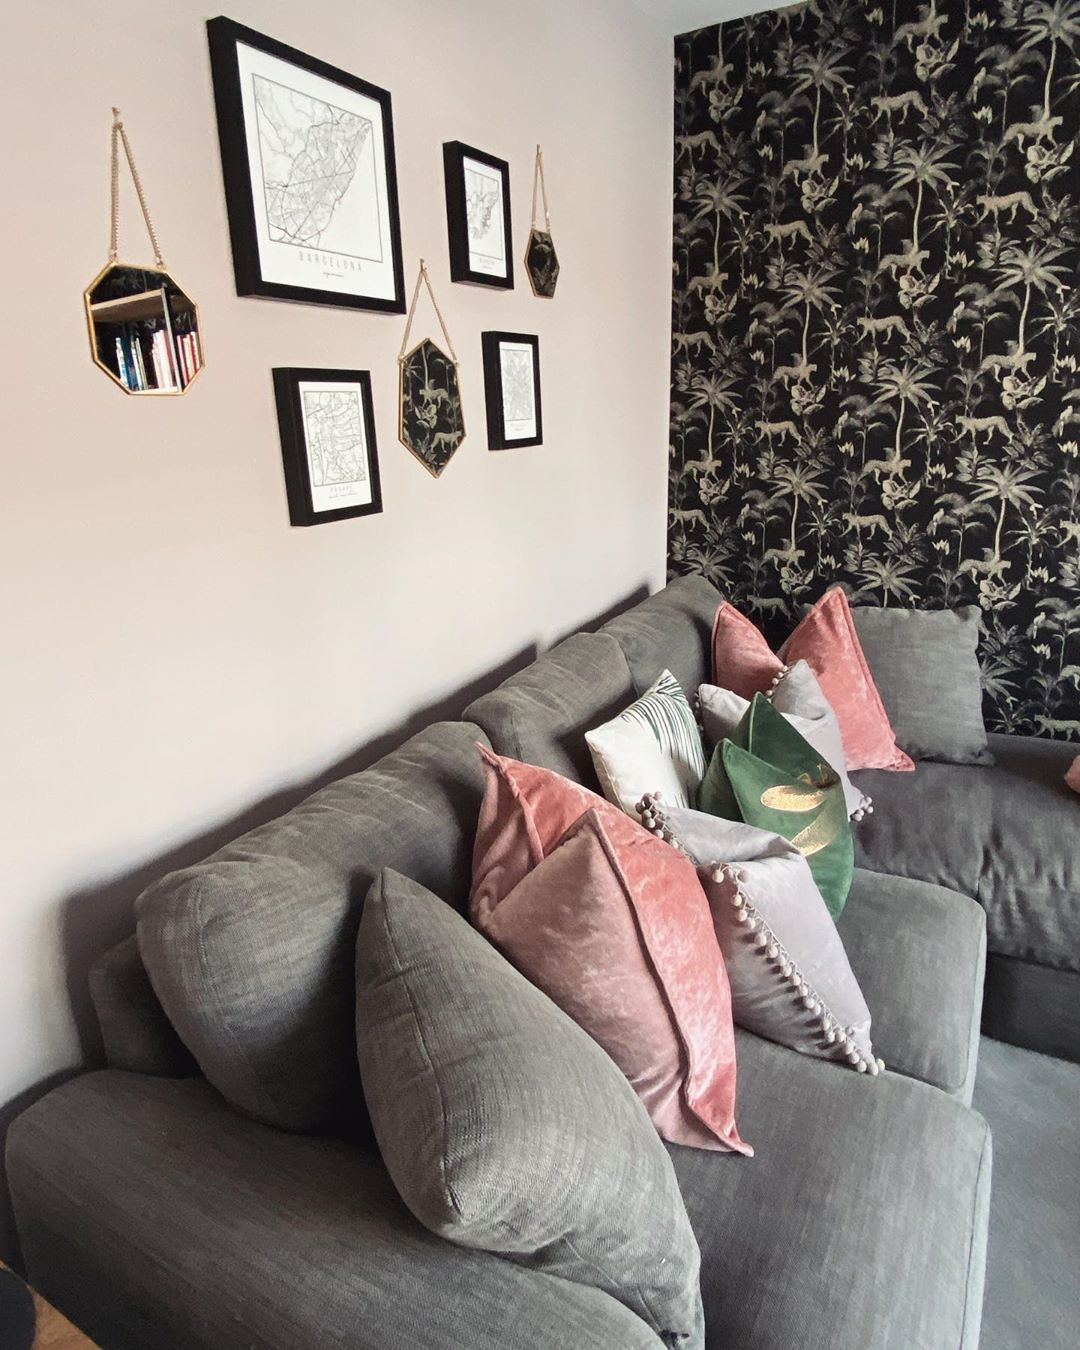 Loving our Savannah leopard Palm Tree Wallpaper Black & Gold here! Looks lush with those pink accessories! 😍  Photo Credit: @tasselsandbees   #decoratingcentreonline #dco #modernhome #interior123 #interiordesire #interiordetails #interiorforinspo #interiorstylist #houseenvy #homereno #interior123 #homedetails #homedecorideas #whitewalls #ihavethisthingwithcolour #myhomevibe #eclecticdecor #currentdesignsituation #sodomino #howwedwell